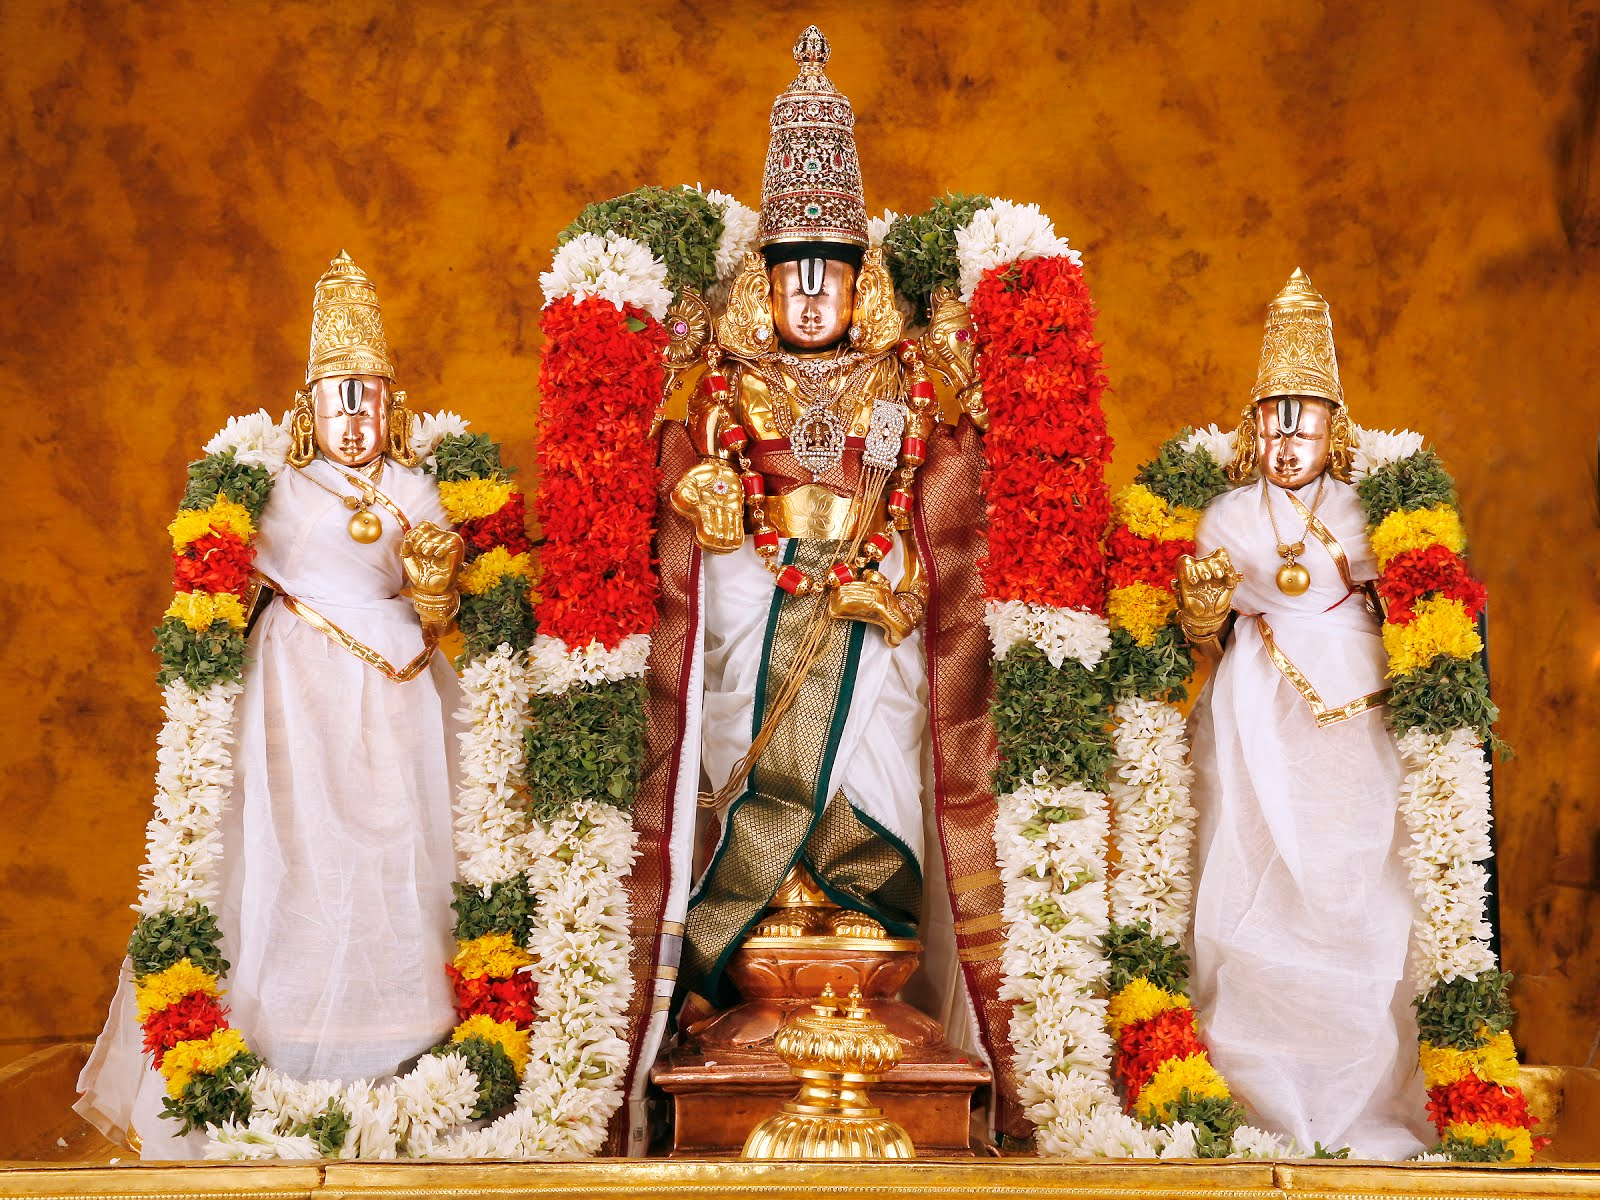 Venkateswara Swami Photos 4k For Pc: Lord Venkateshwara: Swamy-Daily Sevas